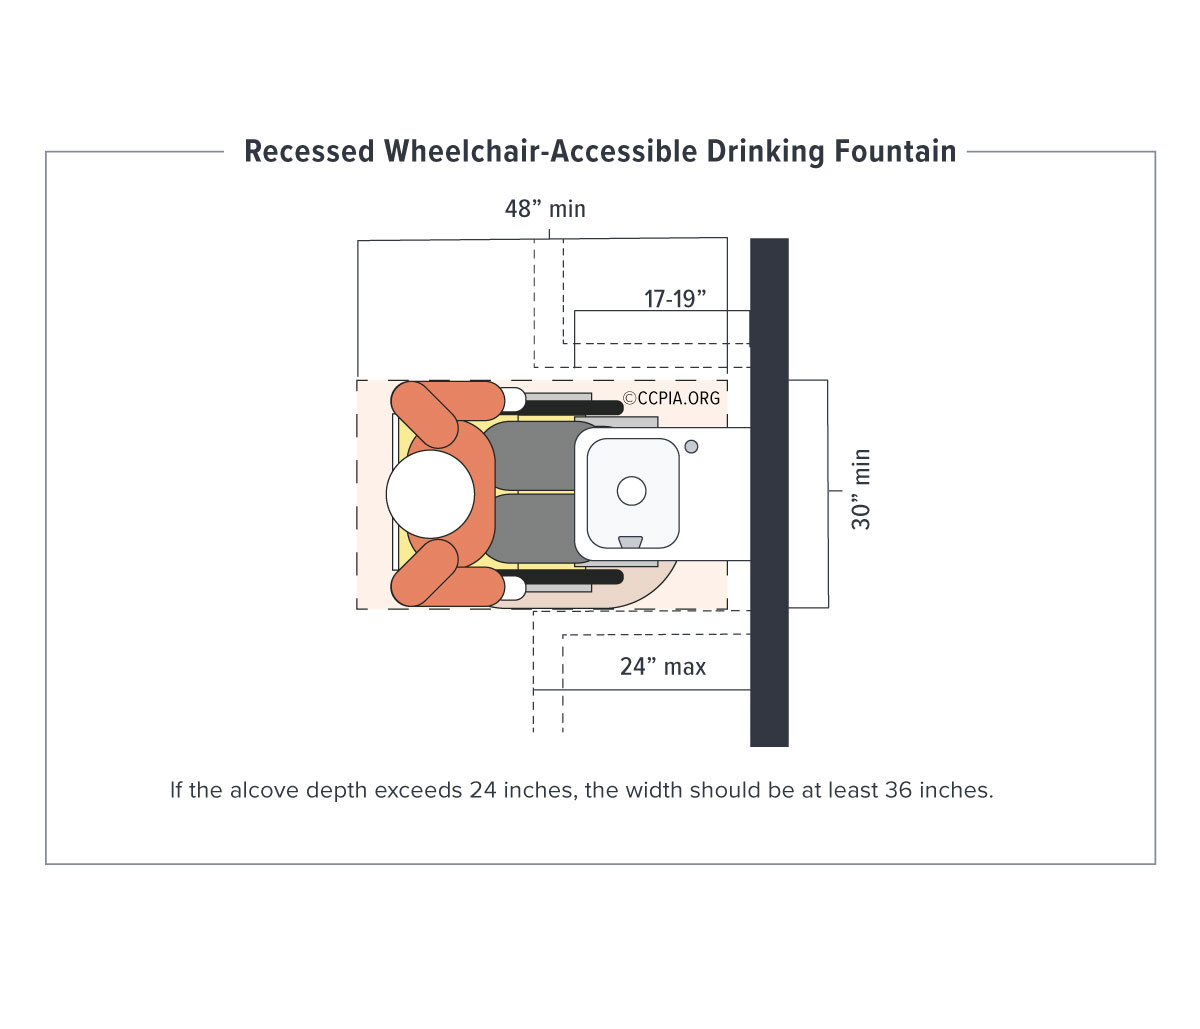 Recessed wheelchair-accessible drinking fountain, accessibility in public accommodations and commercial facilities.